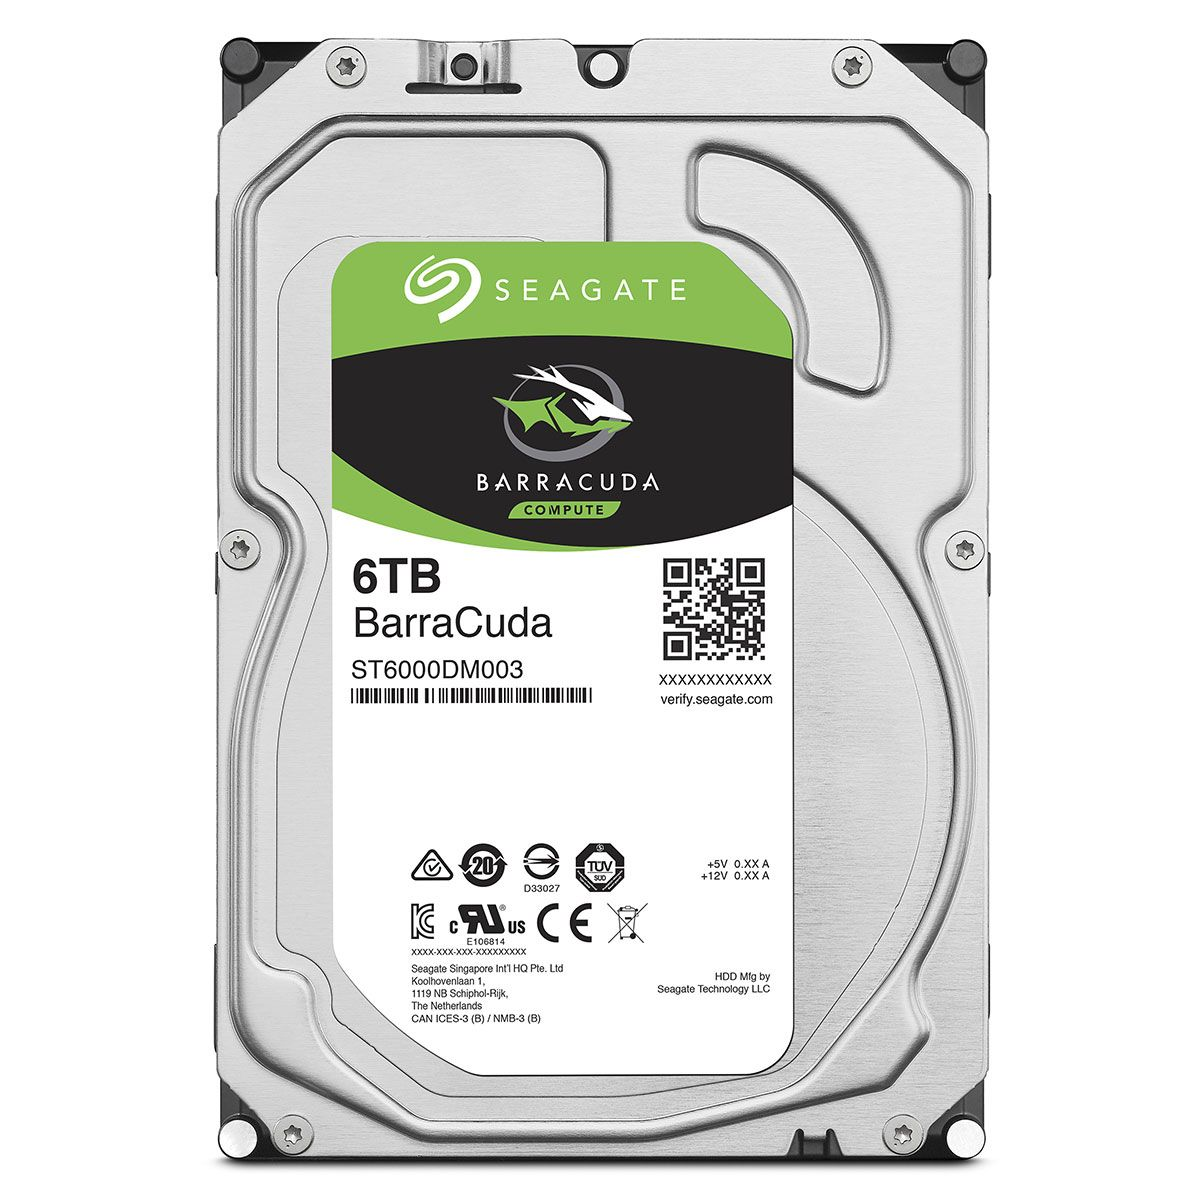 seagate barracuda 6 to - disque dur interne - Rue Montgallet